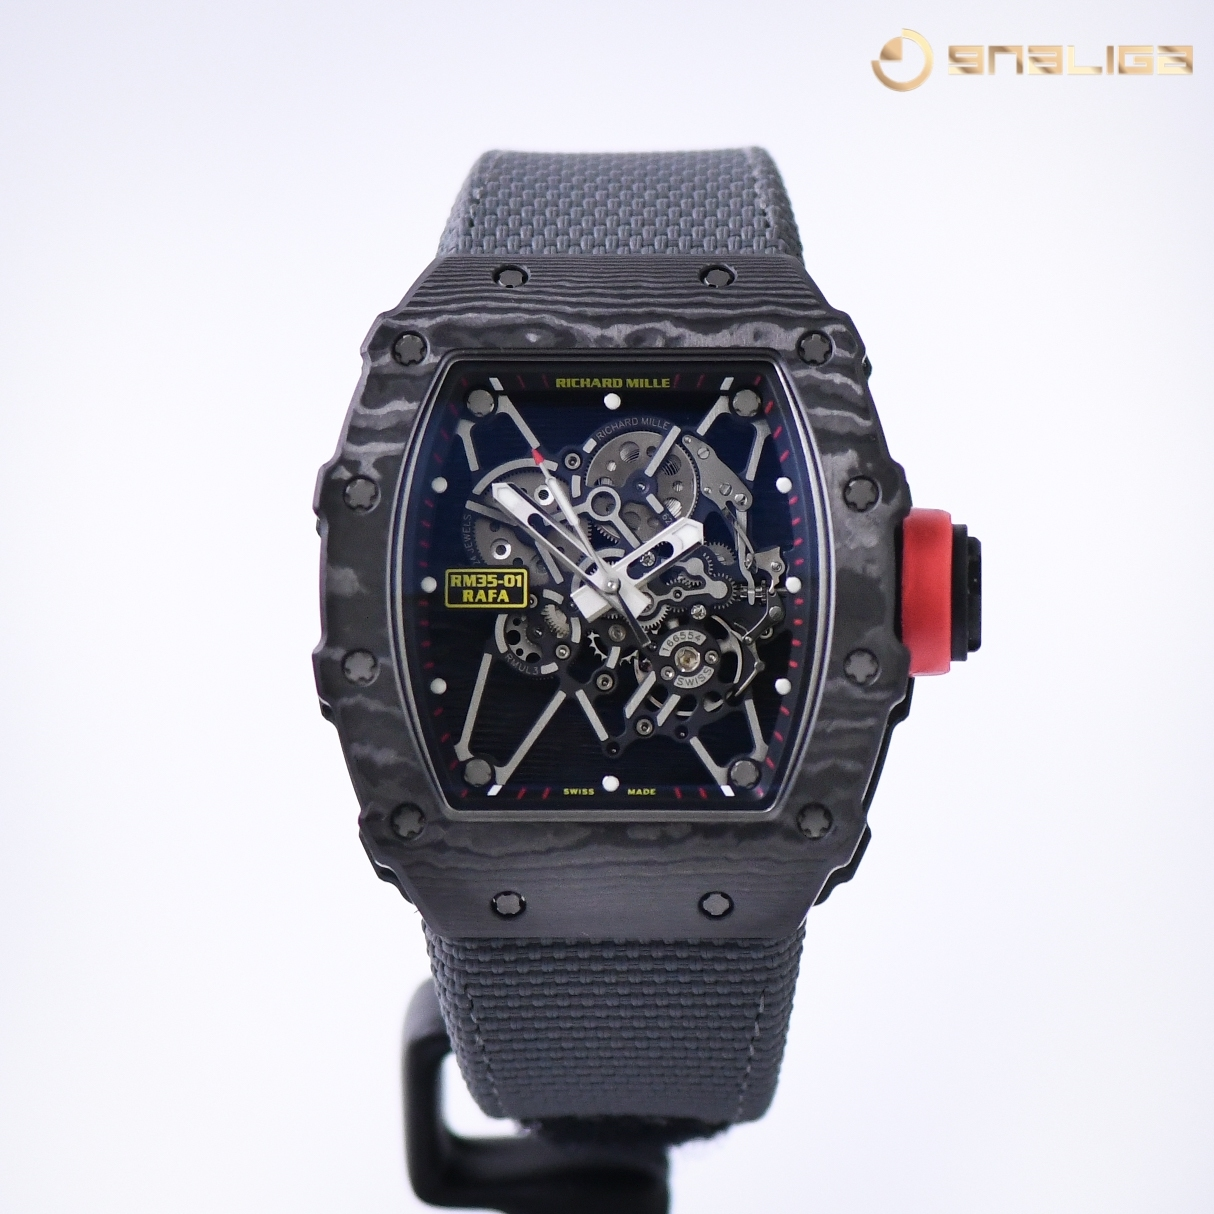 Richard Mille Rafael Nadal Signature Watch Black NTPT Carbon RM035-01